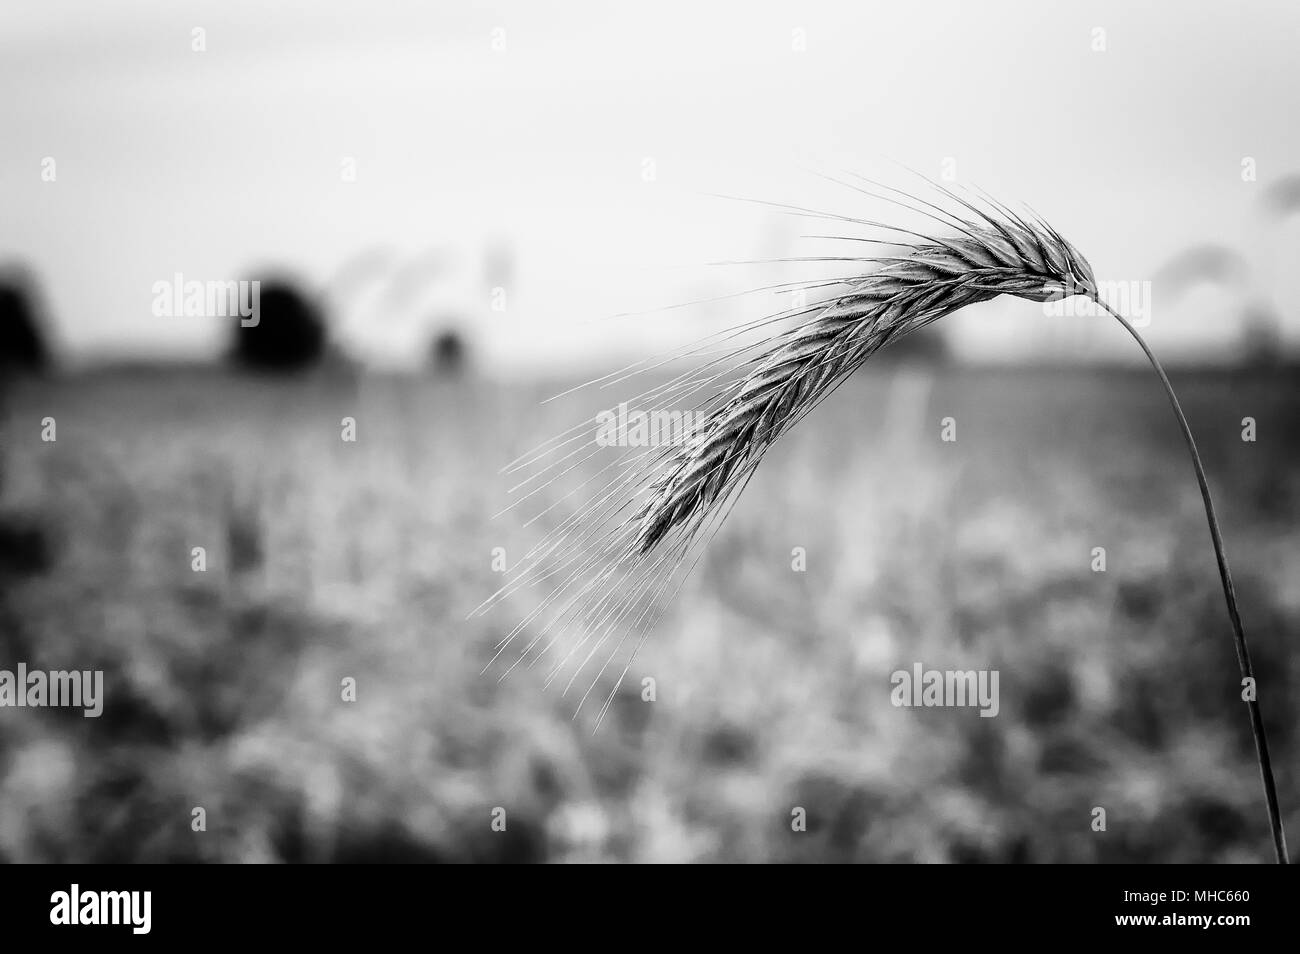 A Day with Wheat - Stock Image